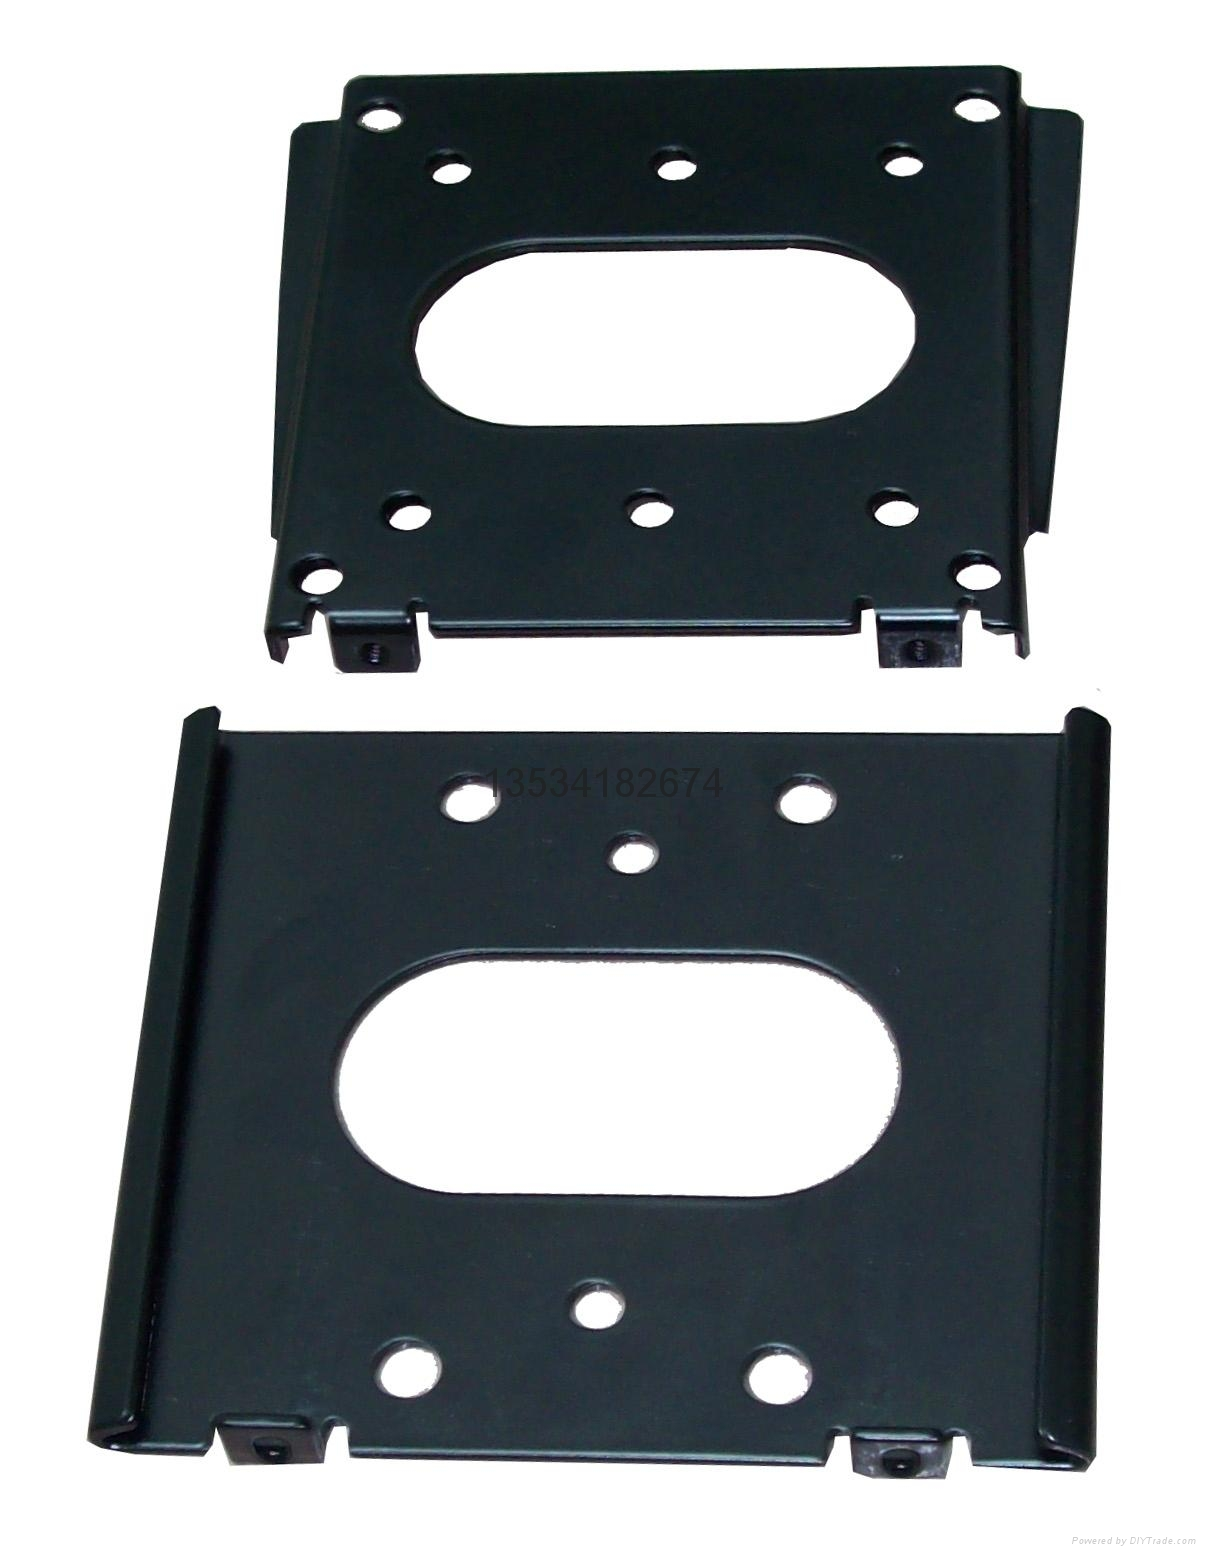 LCD Stand/LCD TV wall mounted bracket N-2 3